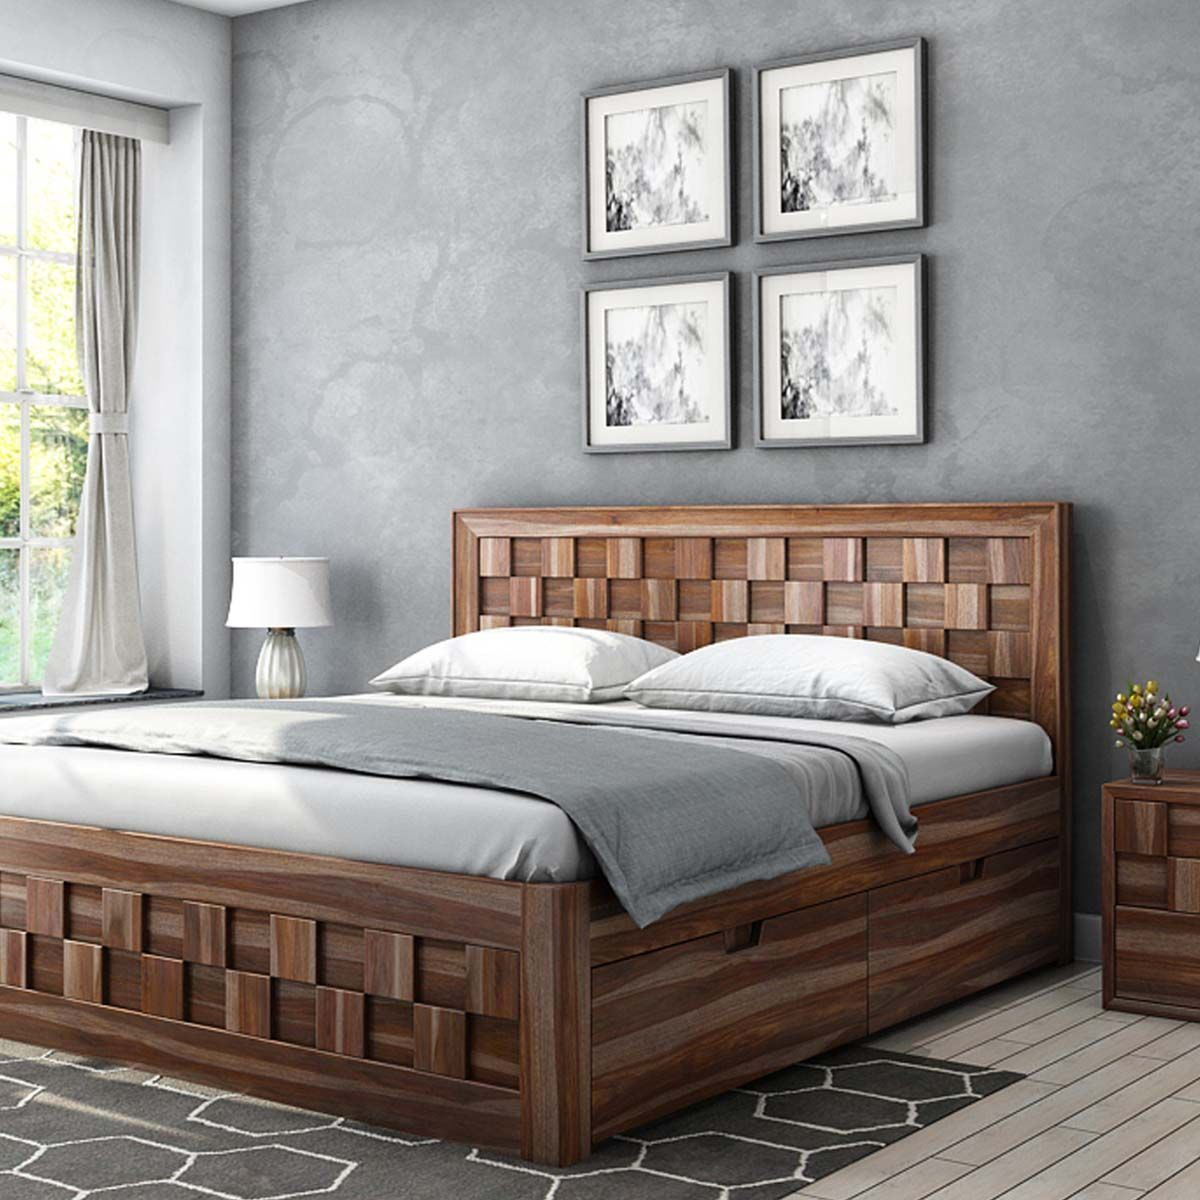 Pin By Modern Bedrooms On Simple Bed Designs In 2020 Wood Bed Design Bed Furniture Design Wooden Bed Design